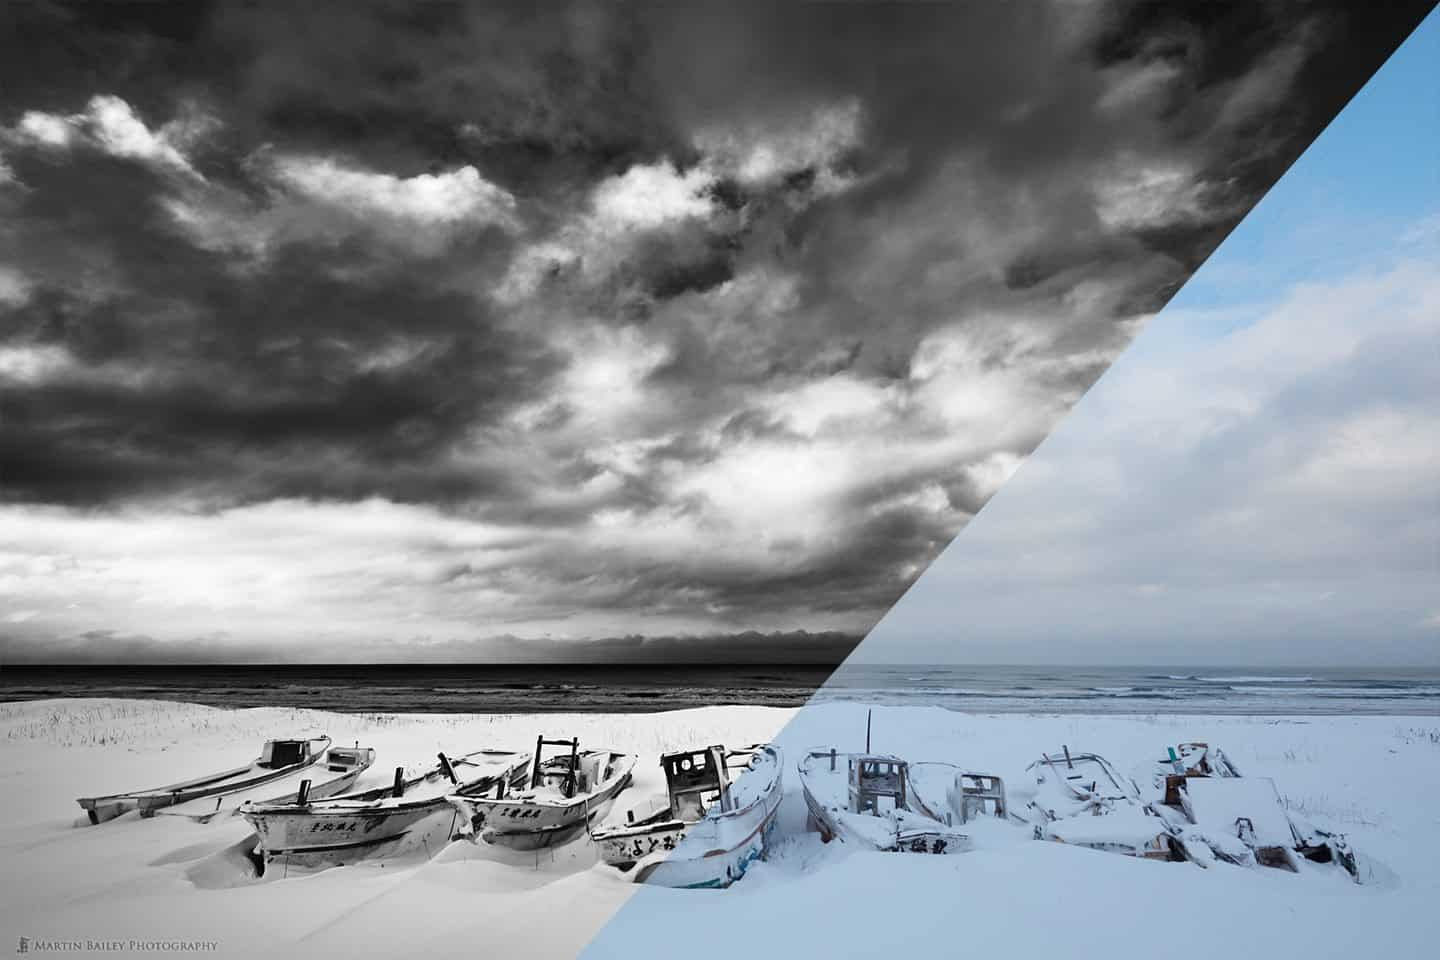 Boat Graveyard with Big Sky - Before / After